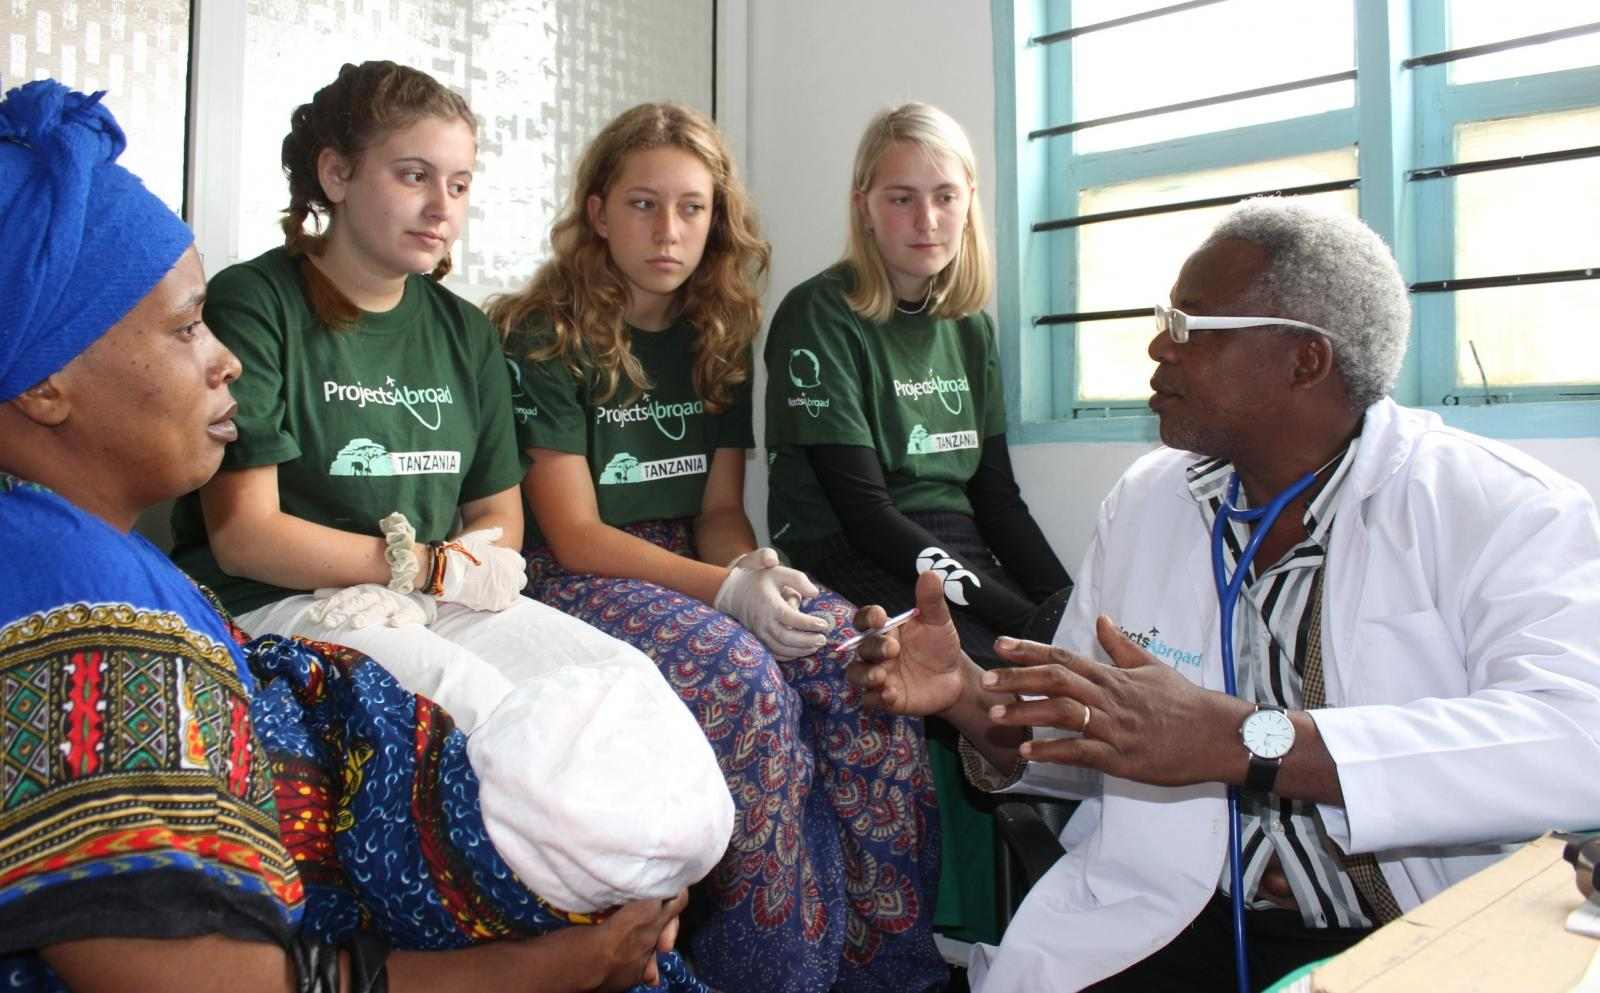 Students gain medical work experience in Africa by observing a local doctor